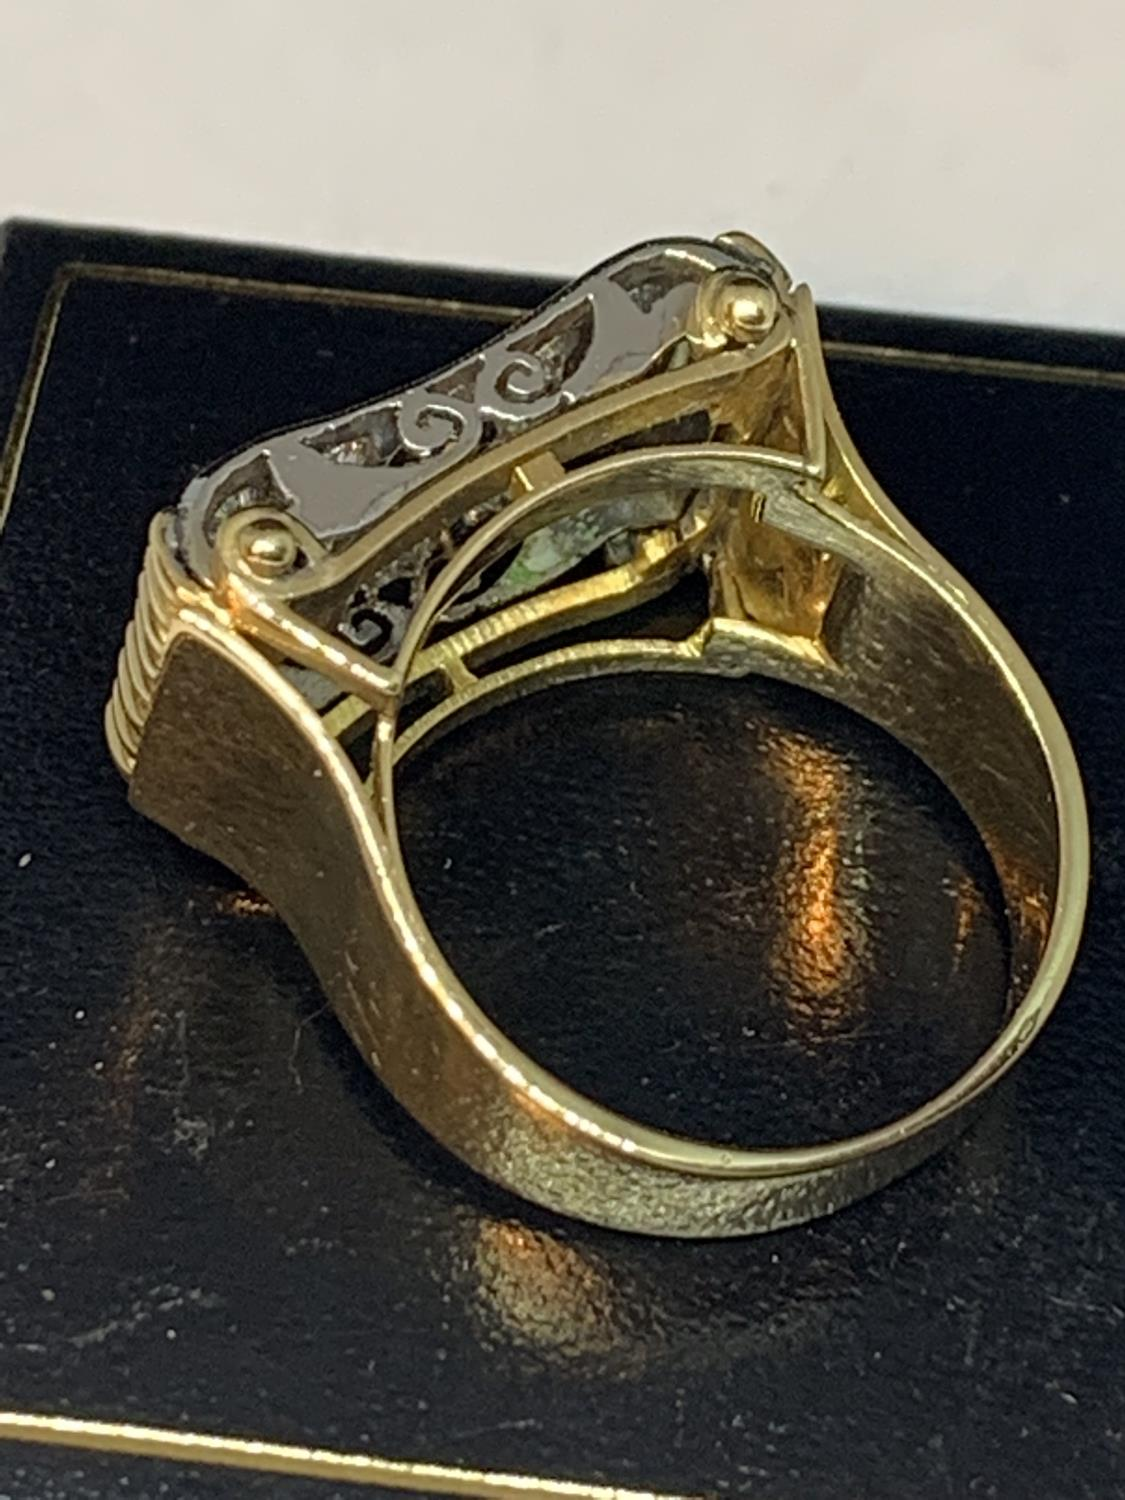 A HEAVY 18 CARAT GOLD RING WITH FIFTEEN DIAMONDS SET IN A RECTANGLE OF DIAMOND CHIPS GROSS WEIGHT 13 - Image 6 of 10